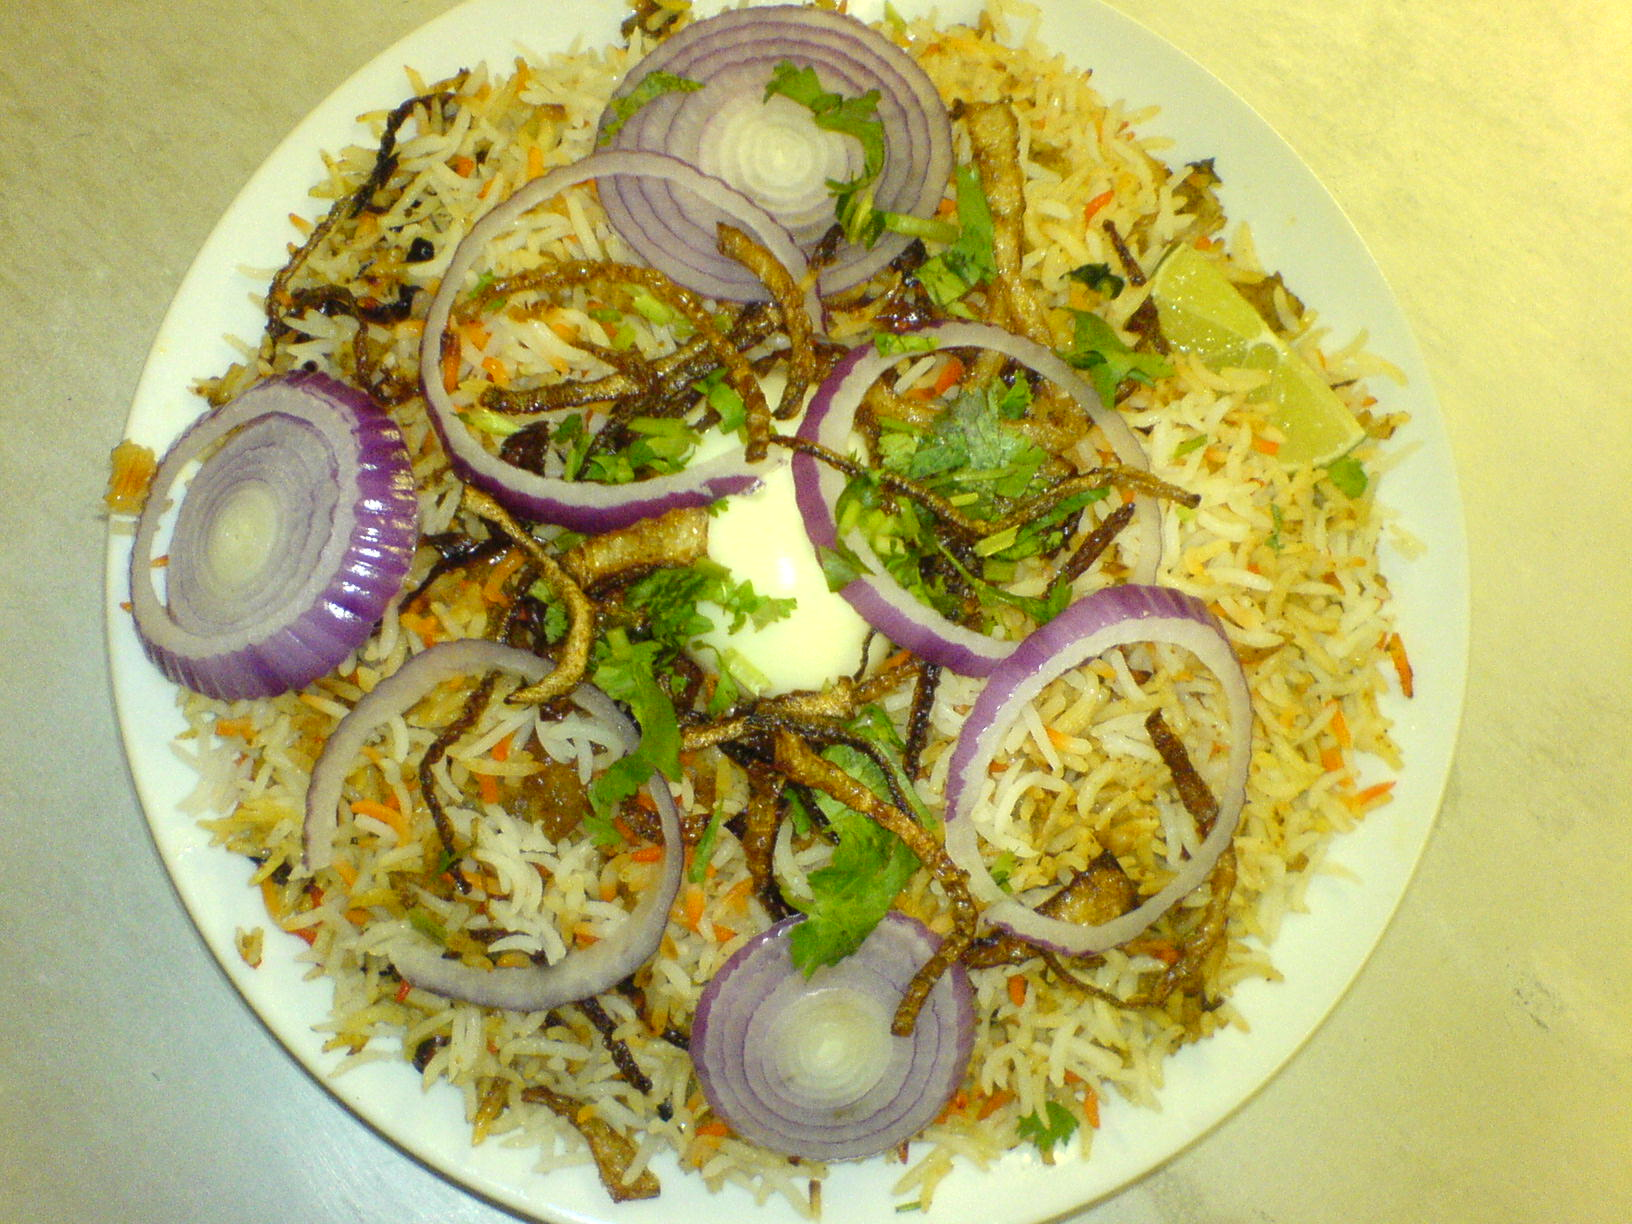 hyderabad_biryani_house_94536-1.jpg